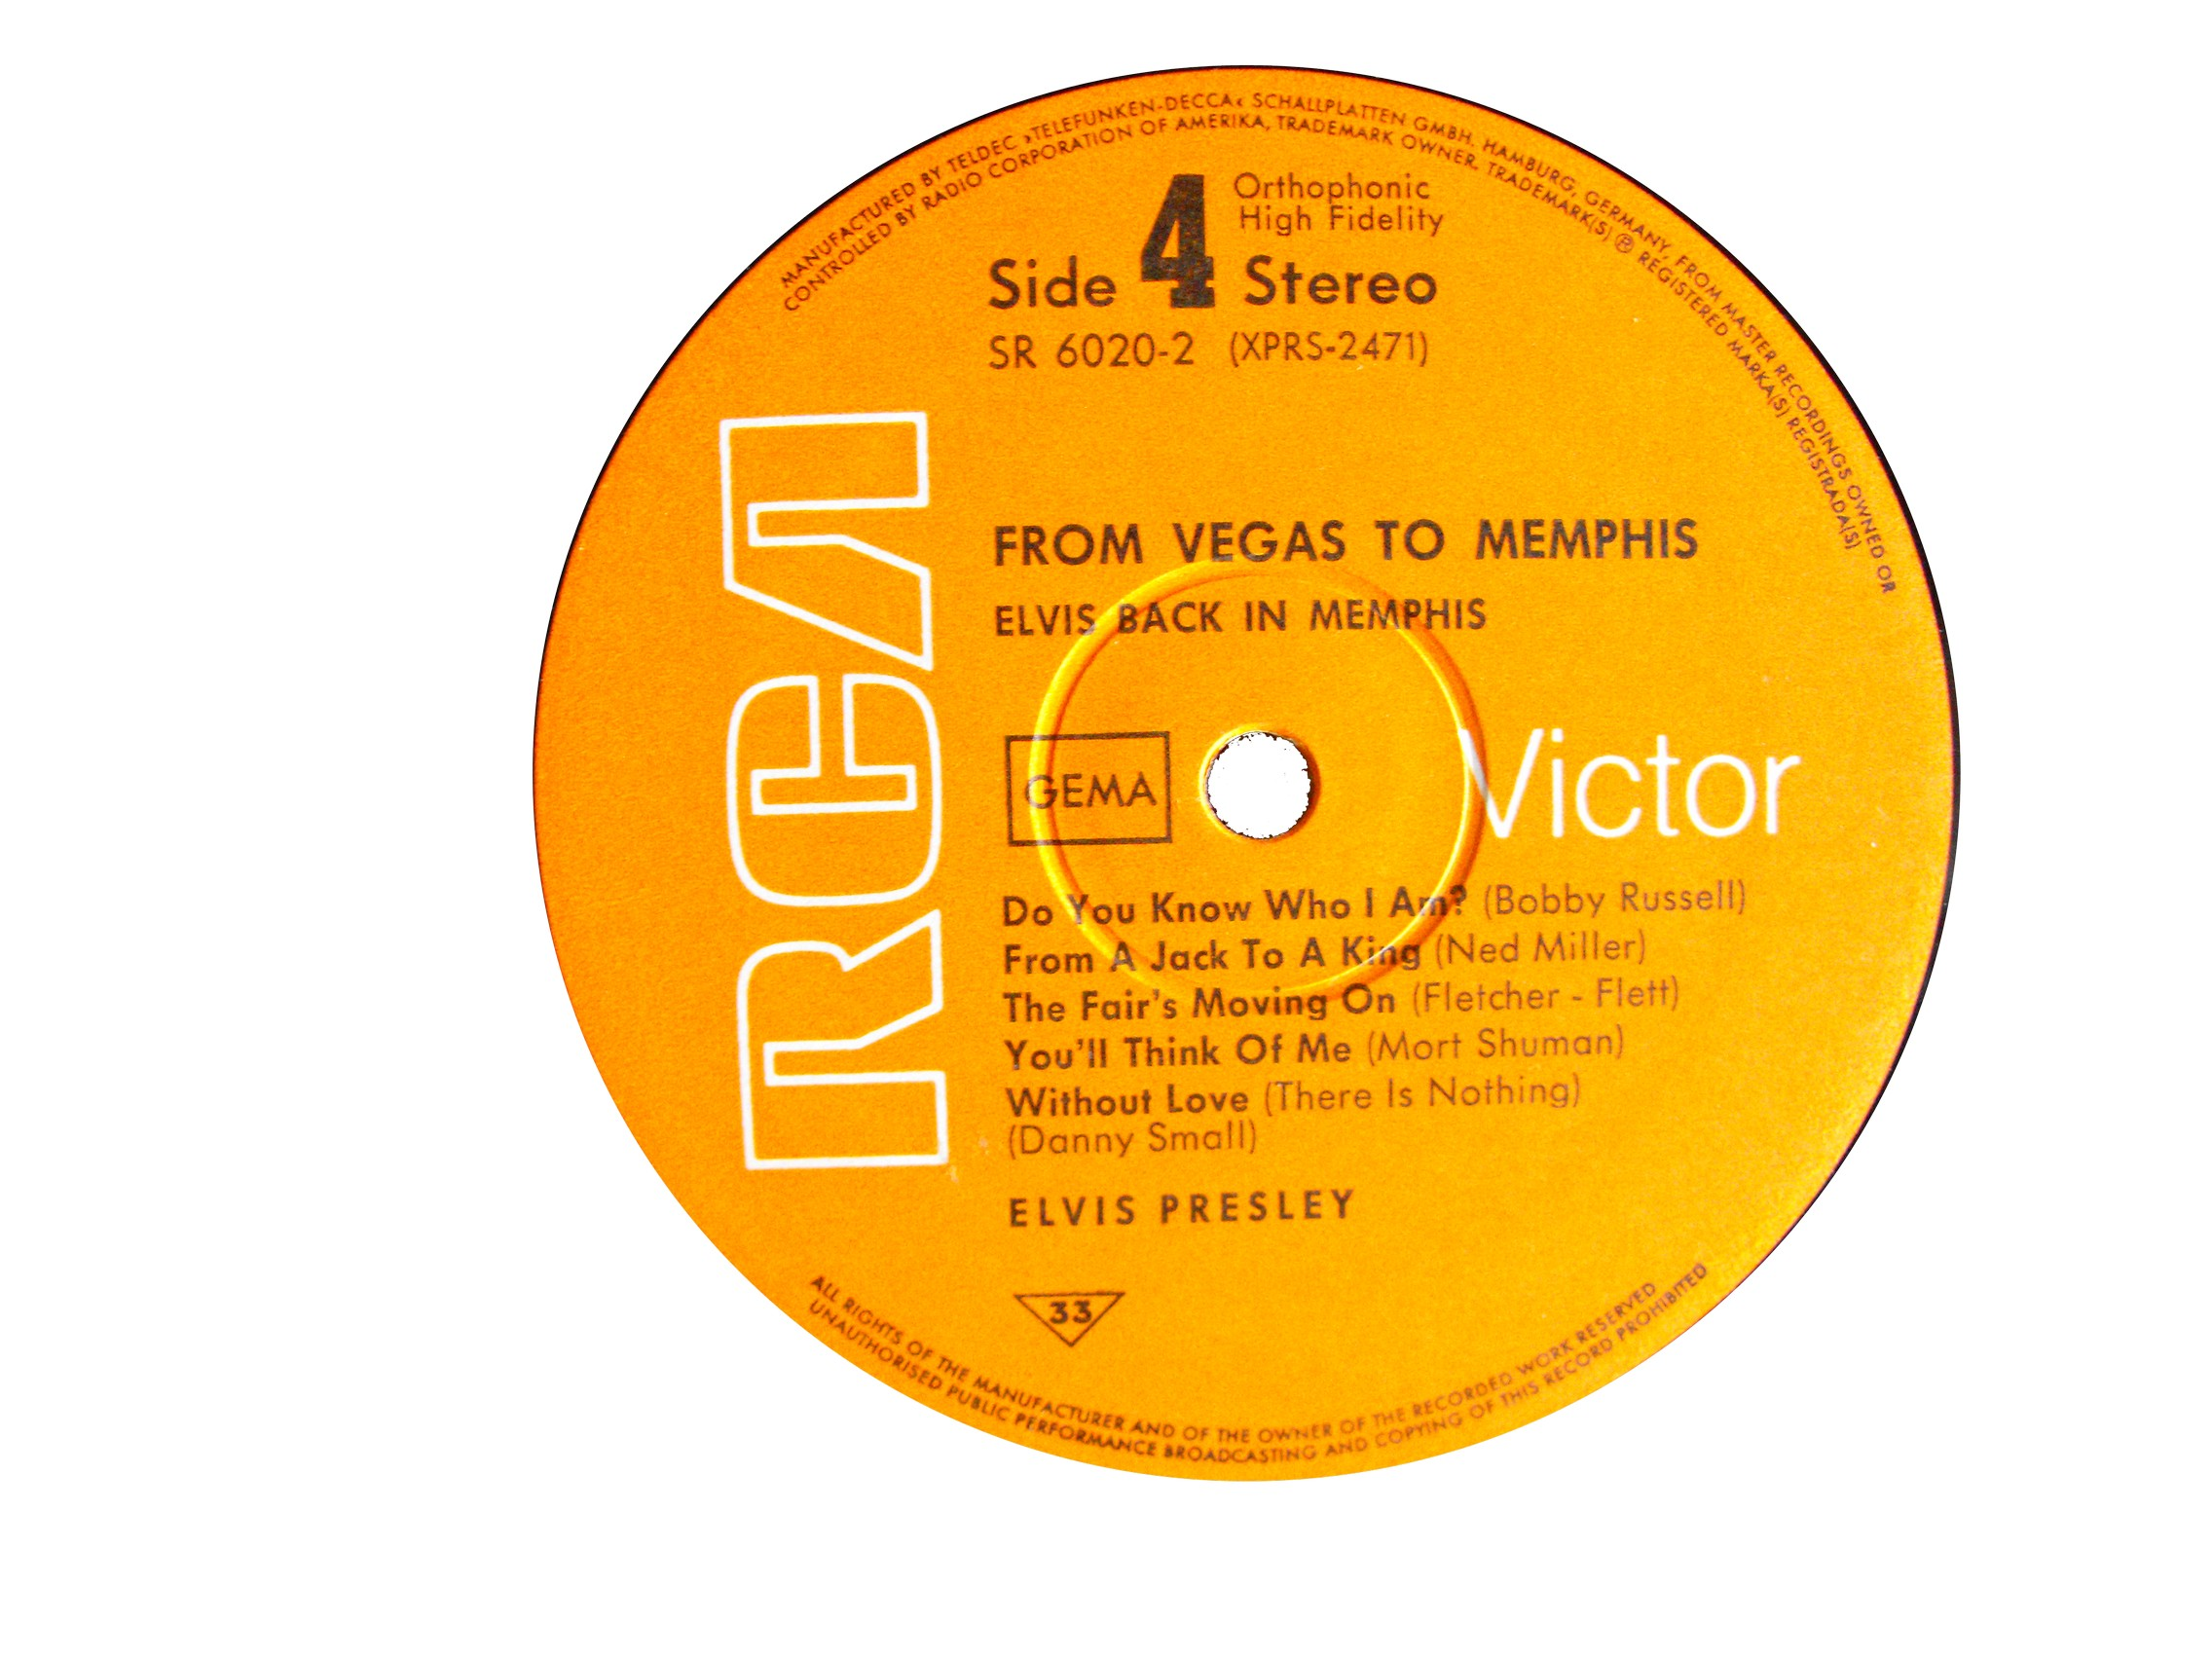 FROM MEMPHIS TO VEGAS / FROM VEGAS TO MEMPHIS Fmtv69label4cqub4